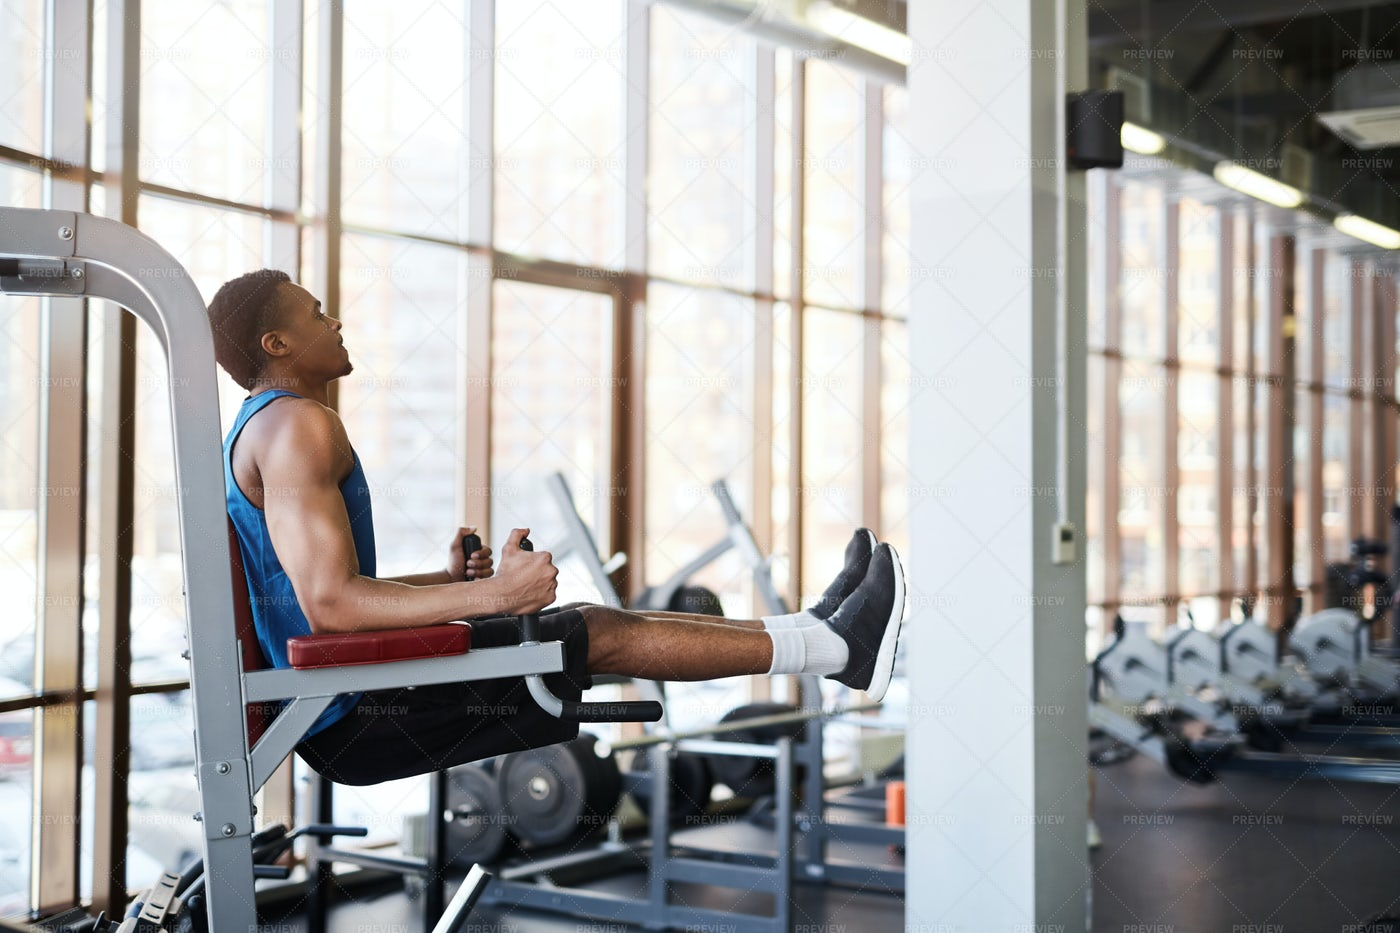 Muscular Man Using Machines In Gym: Stock Photos